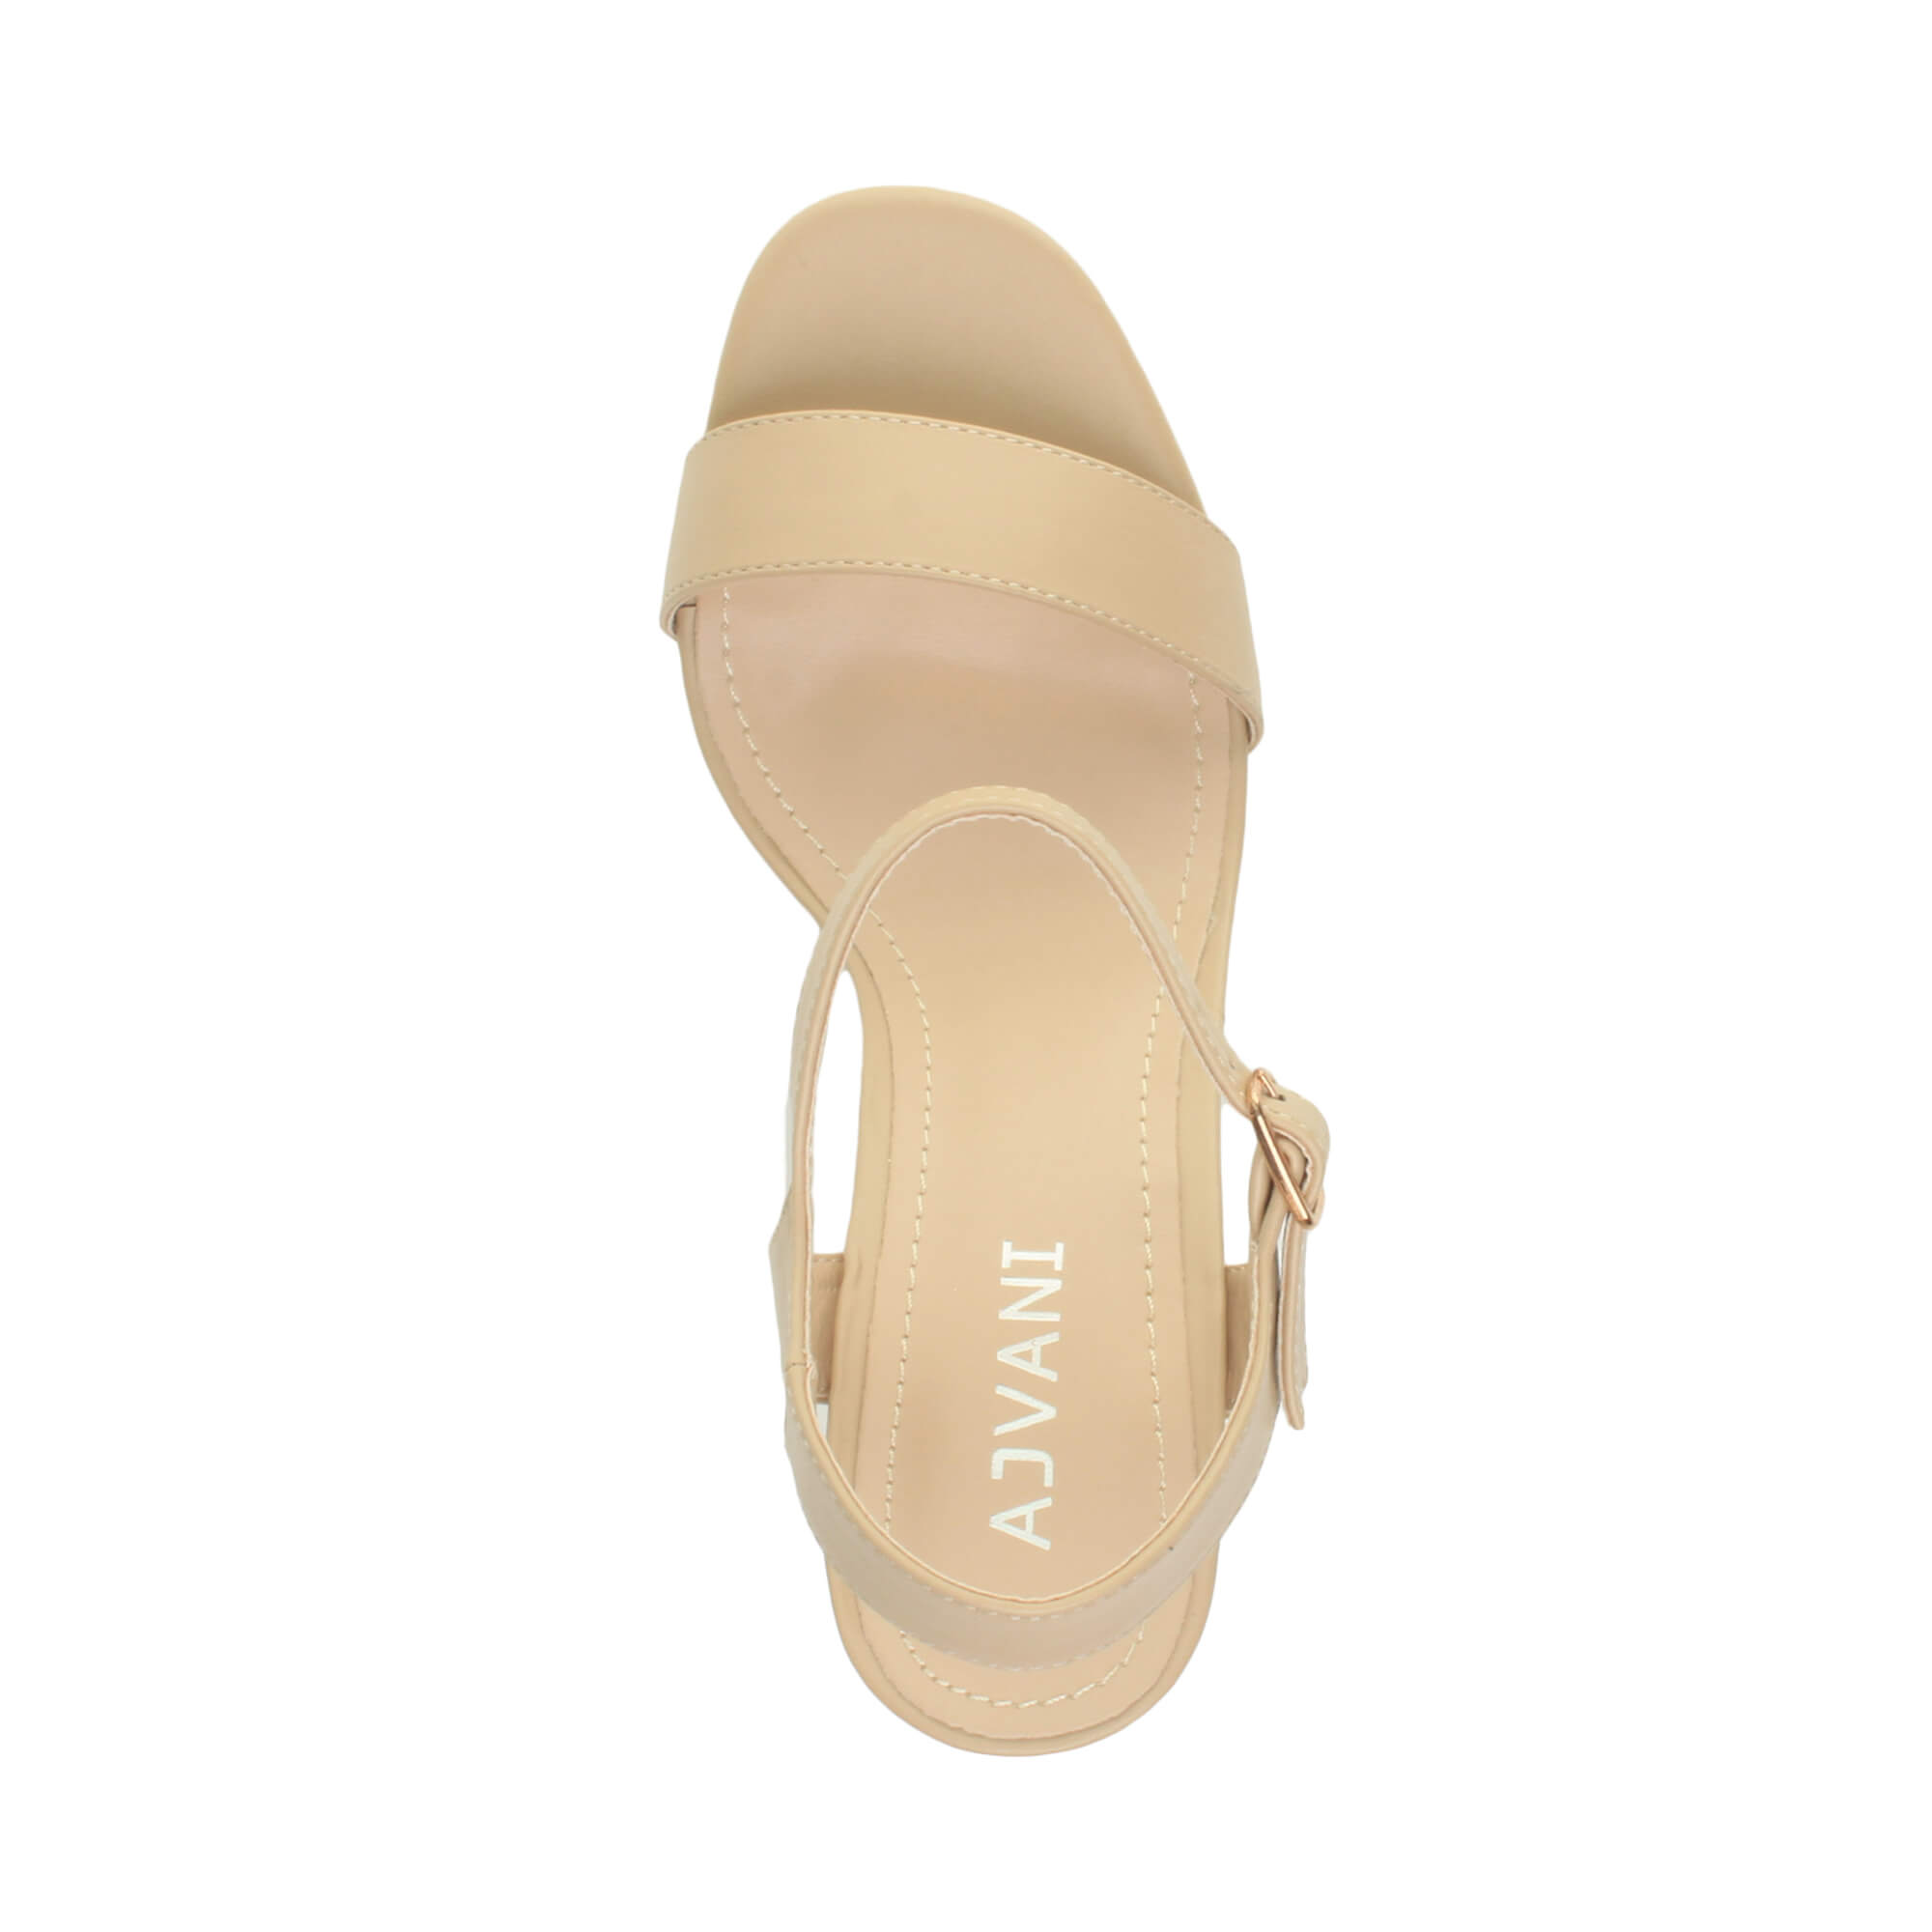 WOMENS-LADIES-HIGH-HEEL-BUCKLE-STRAPPY-BASIC-BARELY-THERE-SANDALS-SHOES-SIZE thumbnail 98